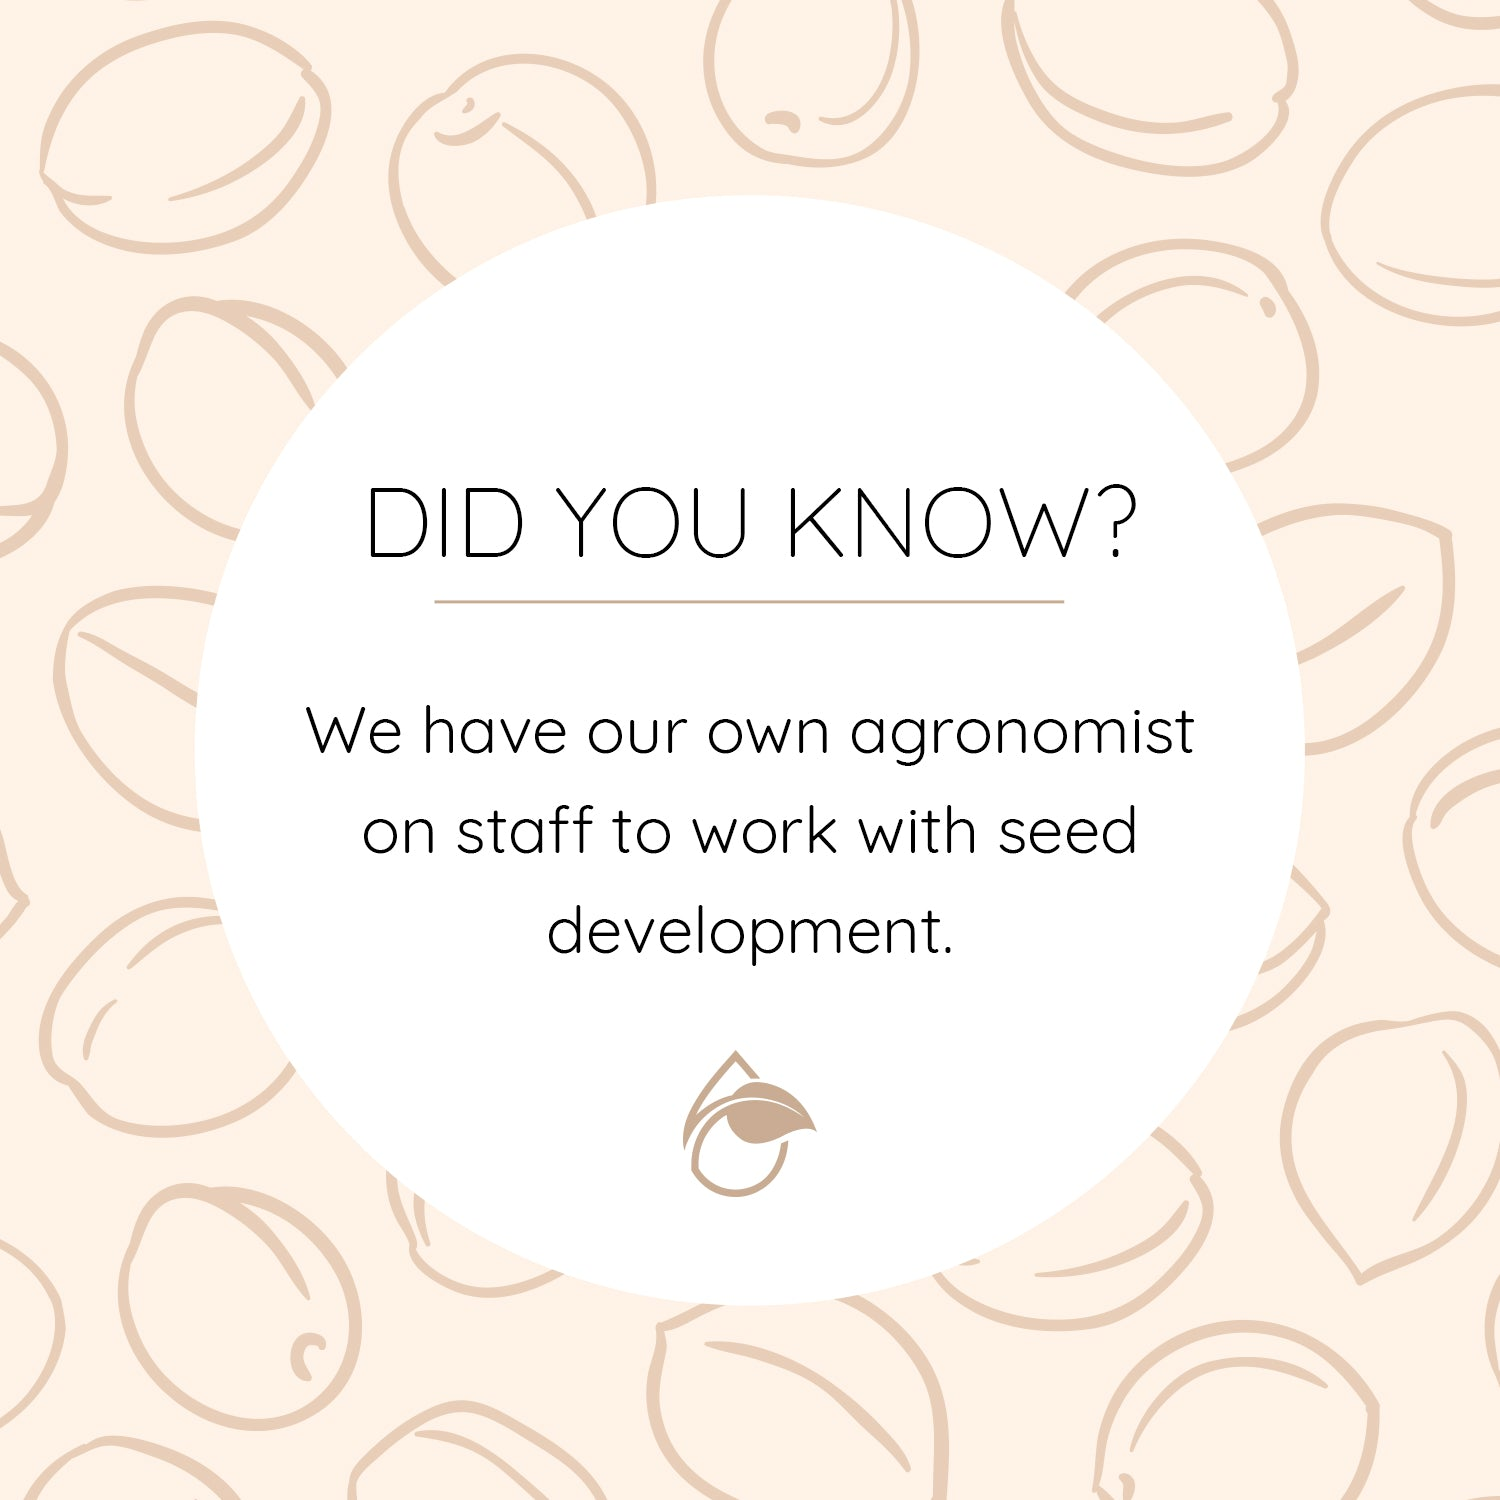 DYK - Agronomist and Seeds